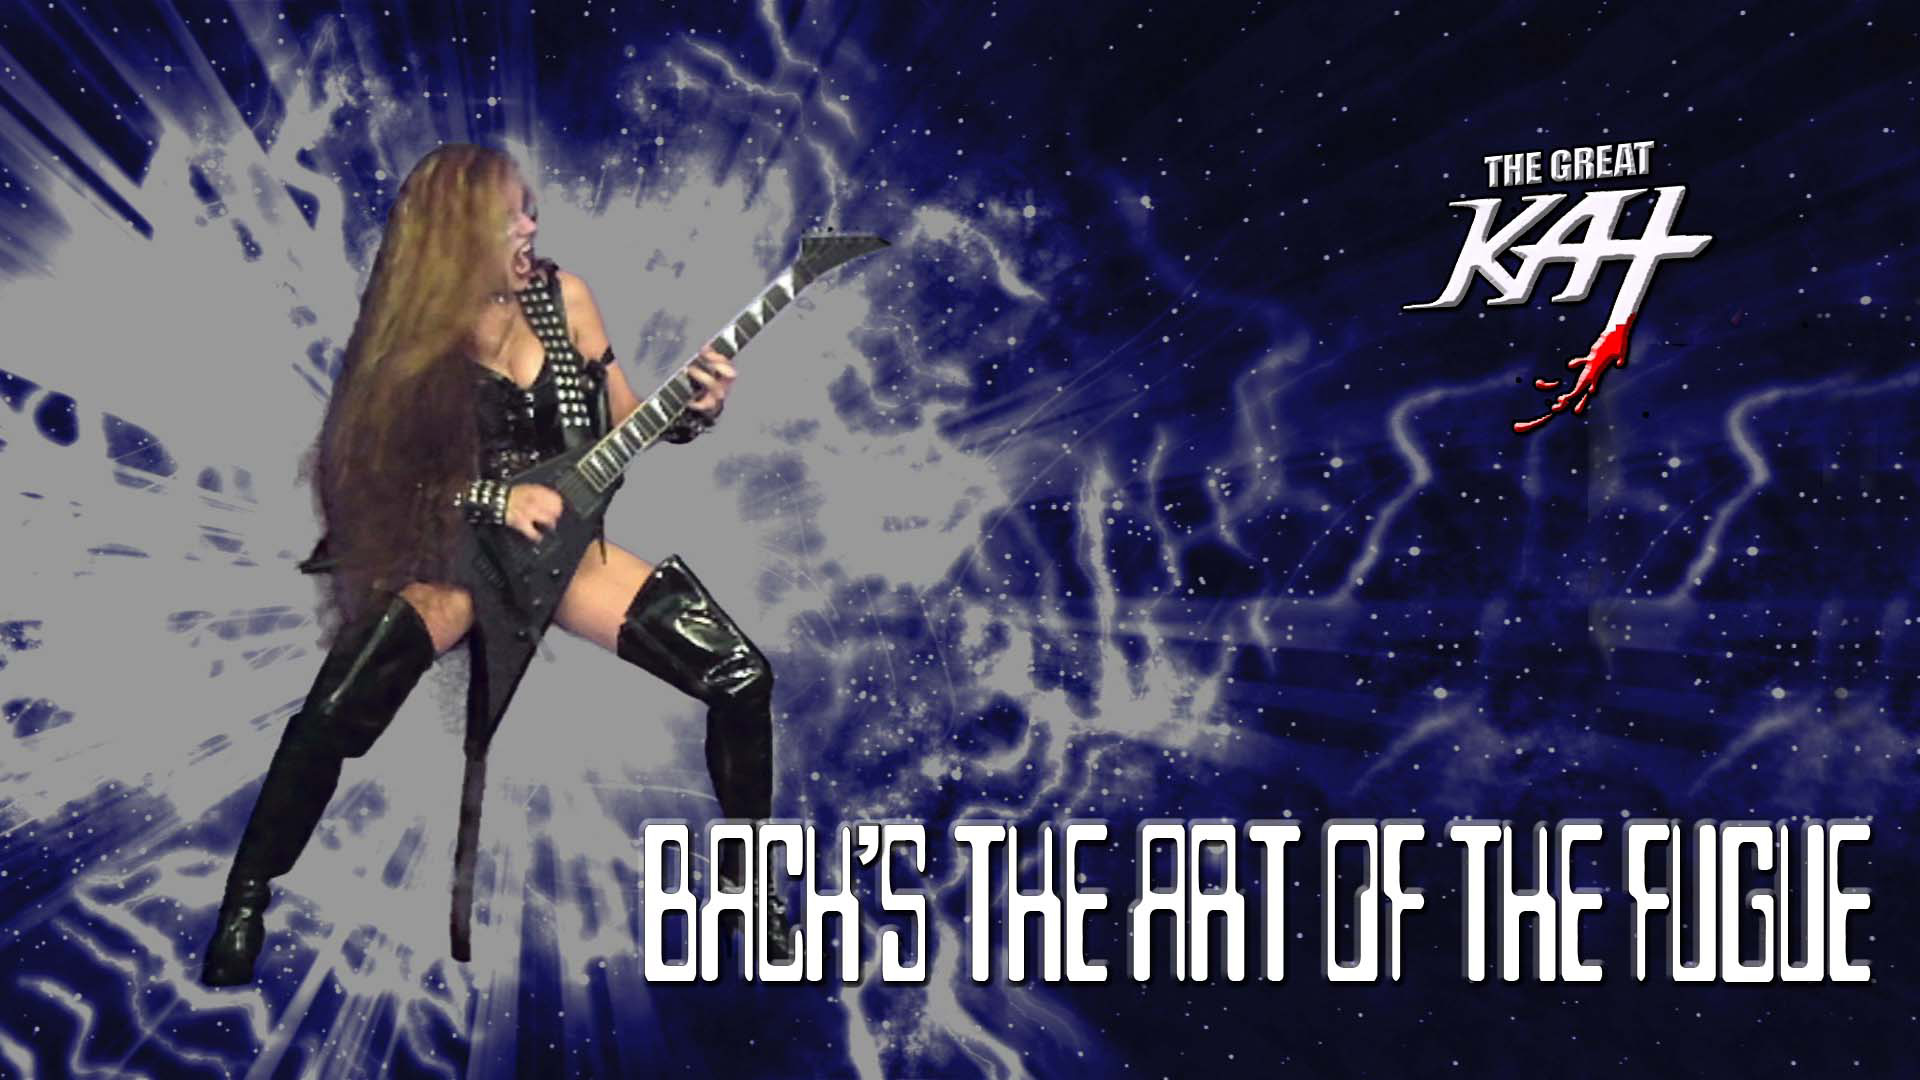 """AMAZON PREMIERES The Great Kat's BACH'S """"THE ART OF THE FUGUE"""" MUSIC VIDEO! WATCH at https://www.amazon.com/dp/B0756Q5WKV/ The Great Kat """"Top 10 Fastest Shredders Of All Time""""/Juilliard Grad Violin Goddess Shreds Bach's The Art Of The Fugue starring The Great Kat's Heavy Metal Guitars & Baroque Harpsichords. J.S. Bach wrote The Art Of The Fugue in his last years while slowly going blind! Bach: Music For The Universe!"""